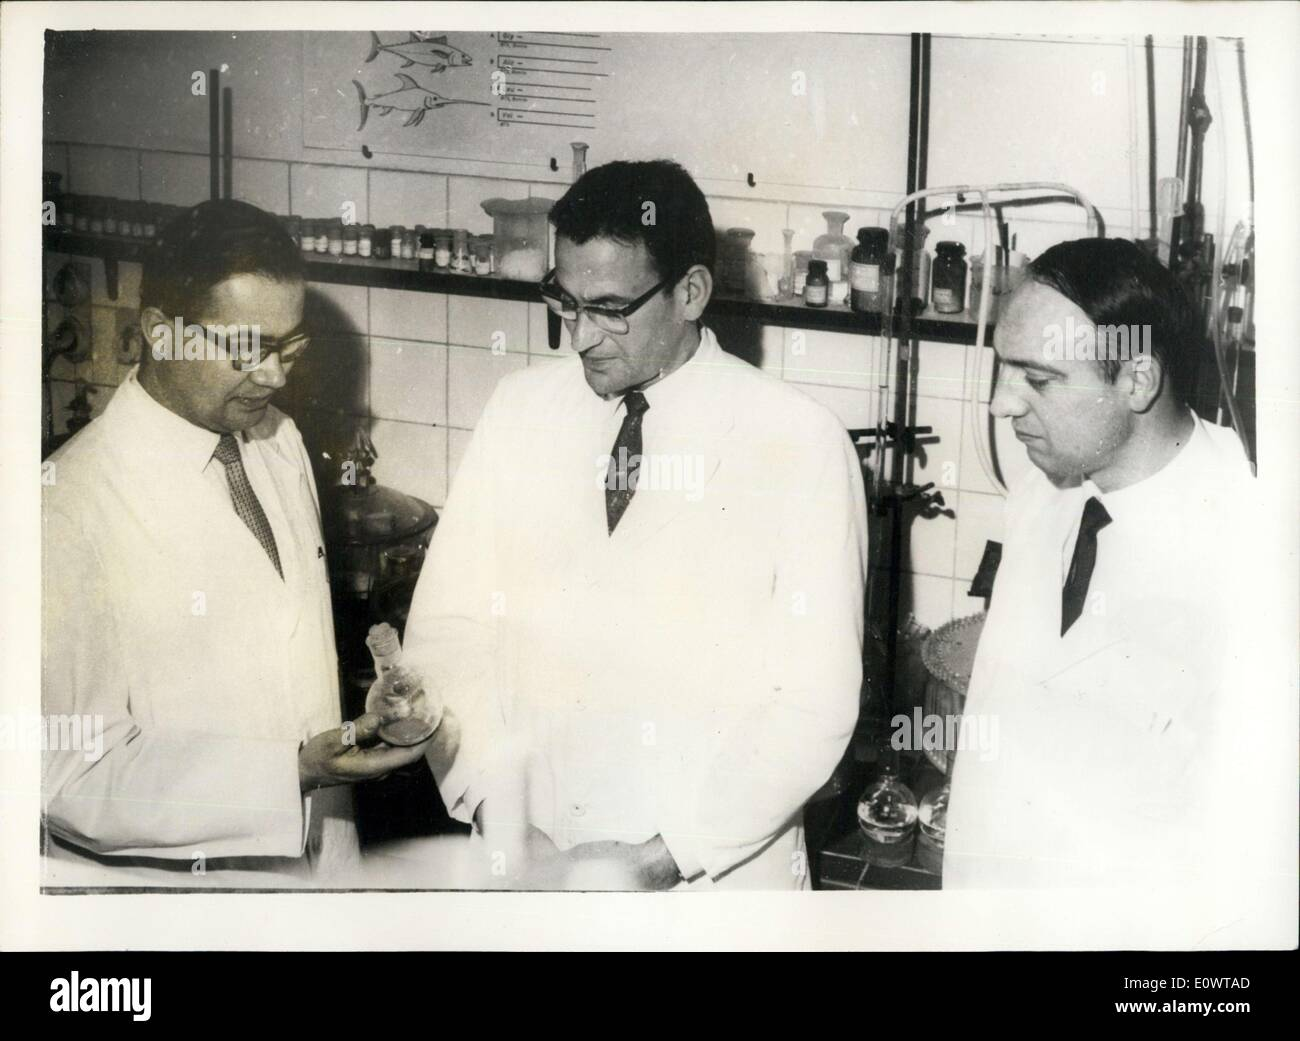 Feb. 14, 1964 - Aachen Scholars Produce Synthetic Insulin: Until now, Insulin, which is required by diabetes suffers, could only be obtained from the pancreas of animals, but now, after eight wears of research, scientists of the Technical High School at Aachen in Germany have achieved a breakthrough bu developing a synthetic type of Insulin, thus putting them ahead of scientists of other nations including American who have been working on similar projects.Photo Shows the leader of the team Dr. Helmut Zahn (center) with two of his collaborators, Dr. Johannes Meinhofer (left) and Sr - Stock Image